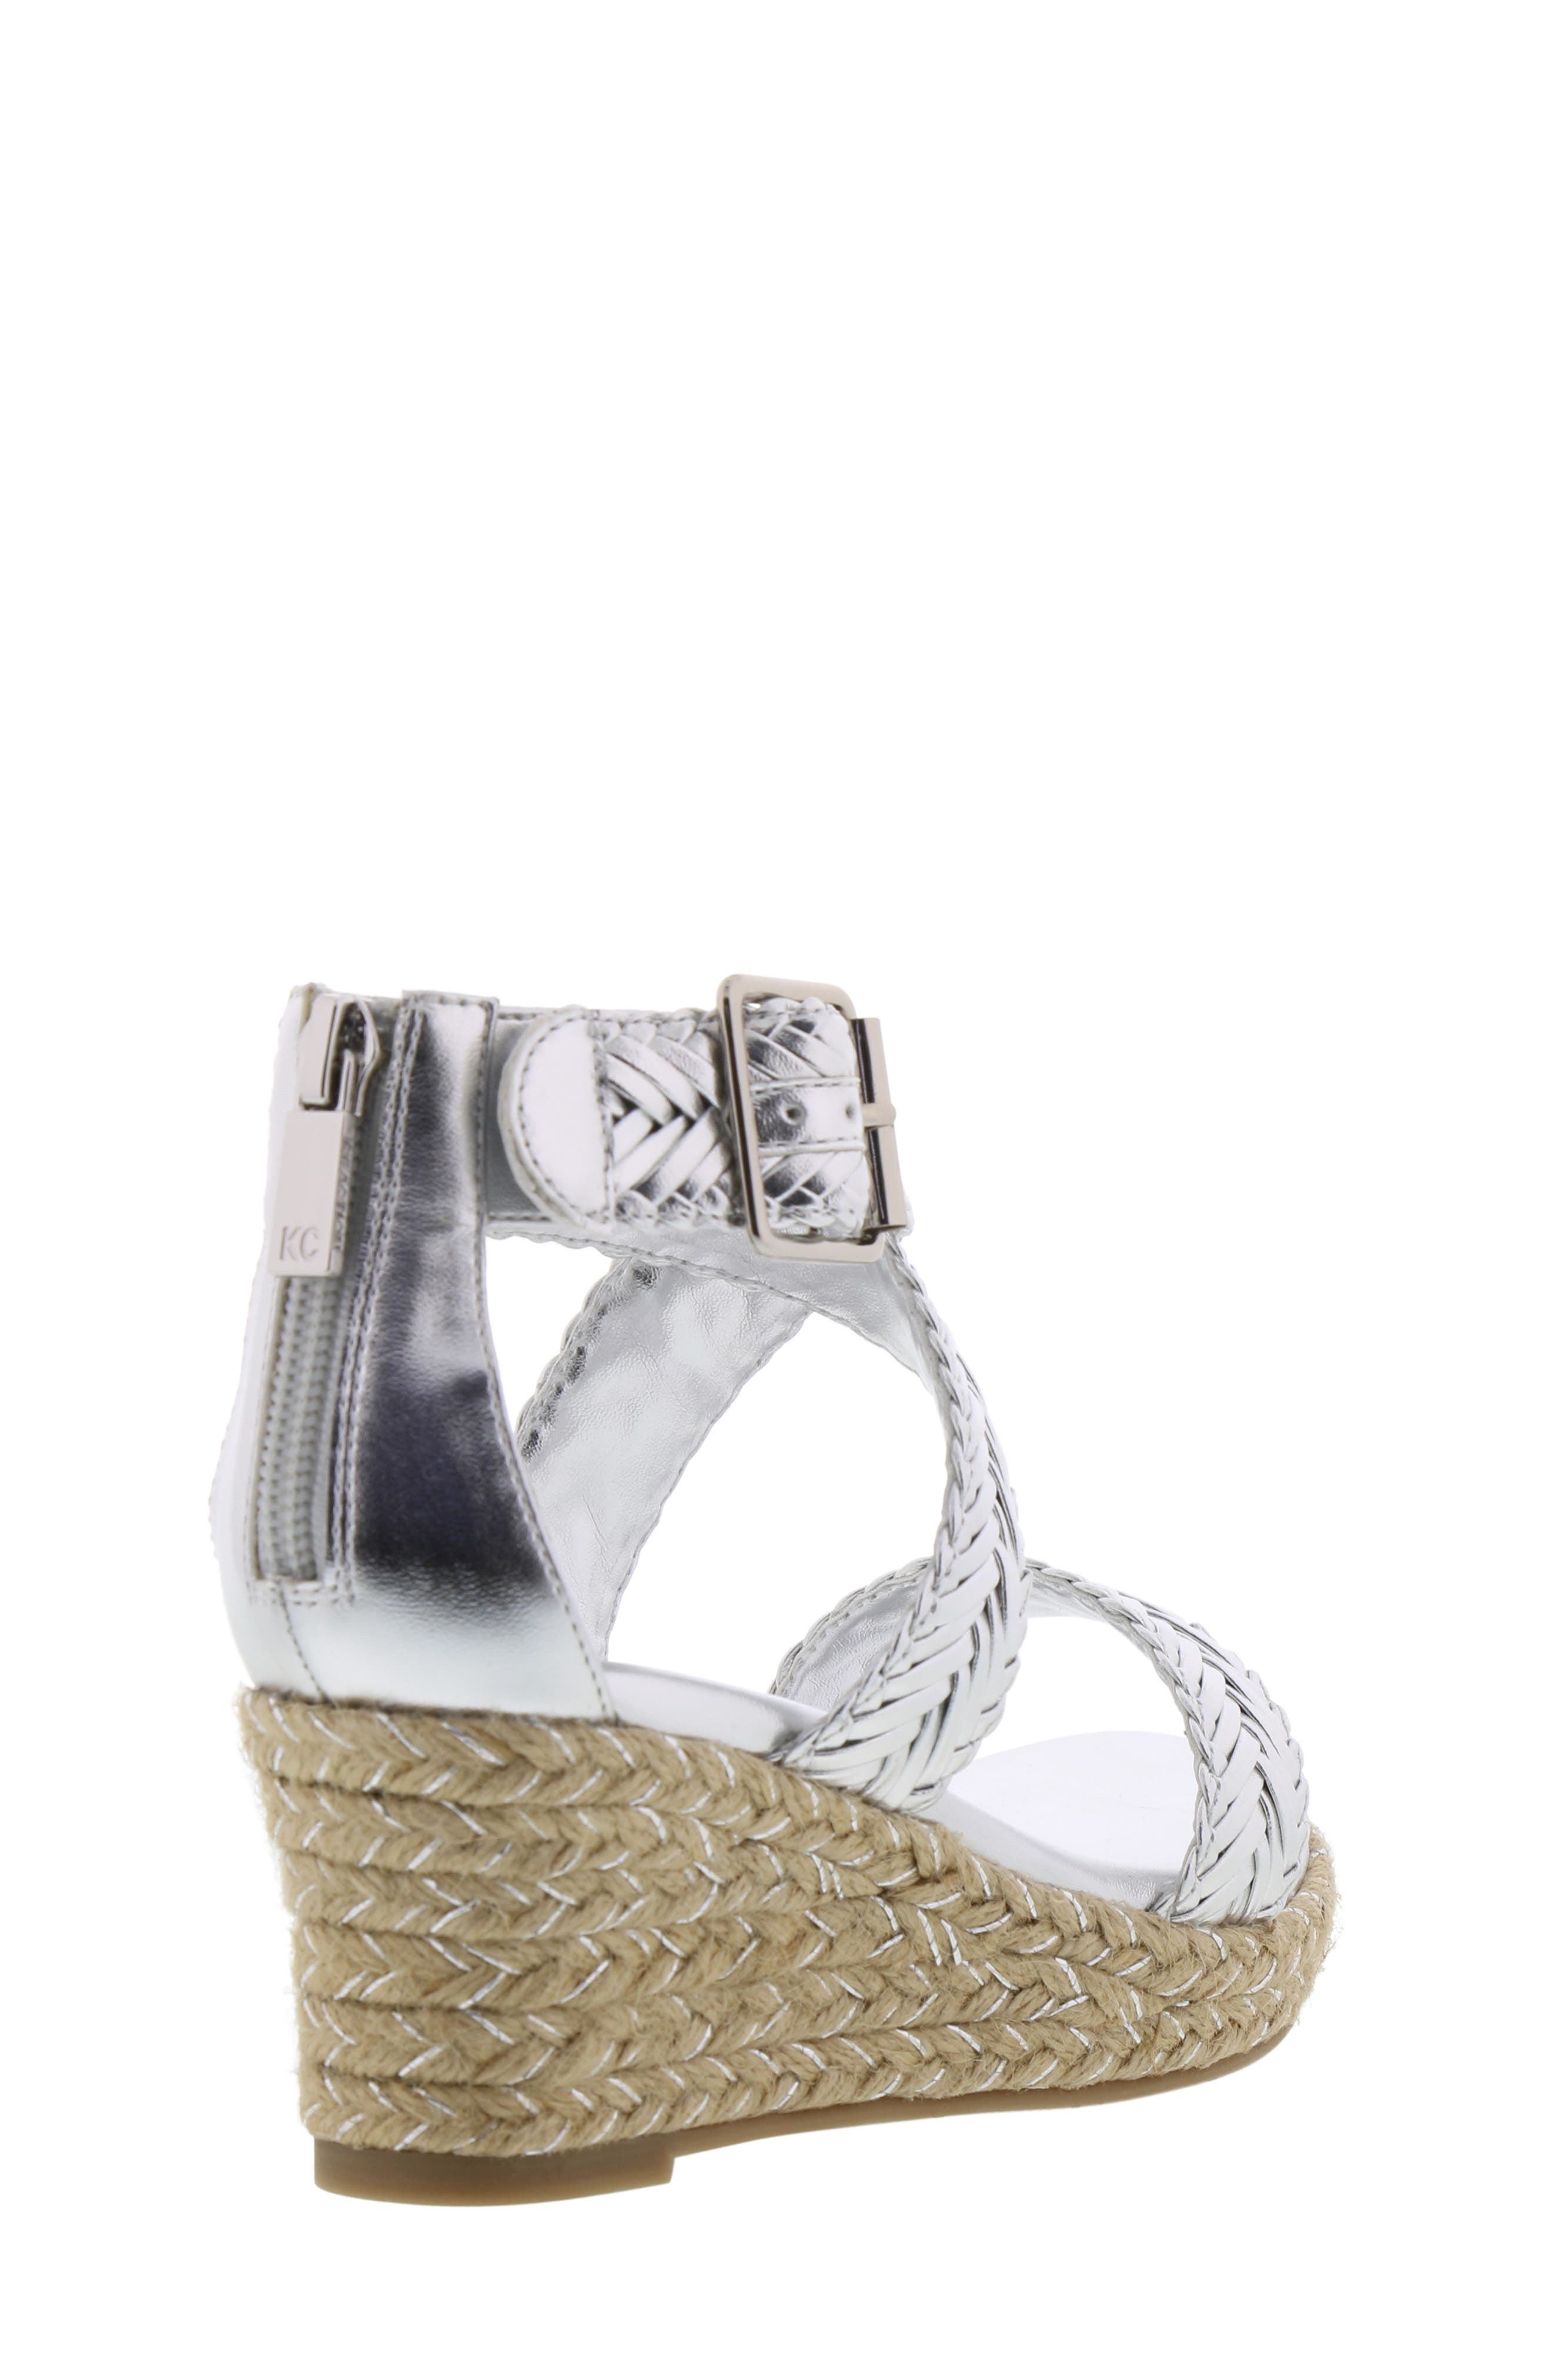 REACTION KENNETH COLE, Reed Sway Metallic Wedge Sandal, Alternate thumbnail 2, color, SILVER